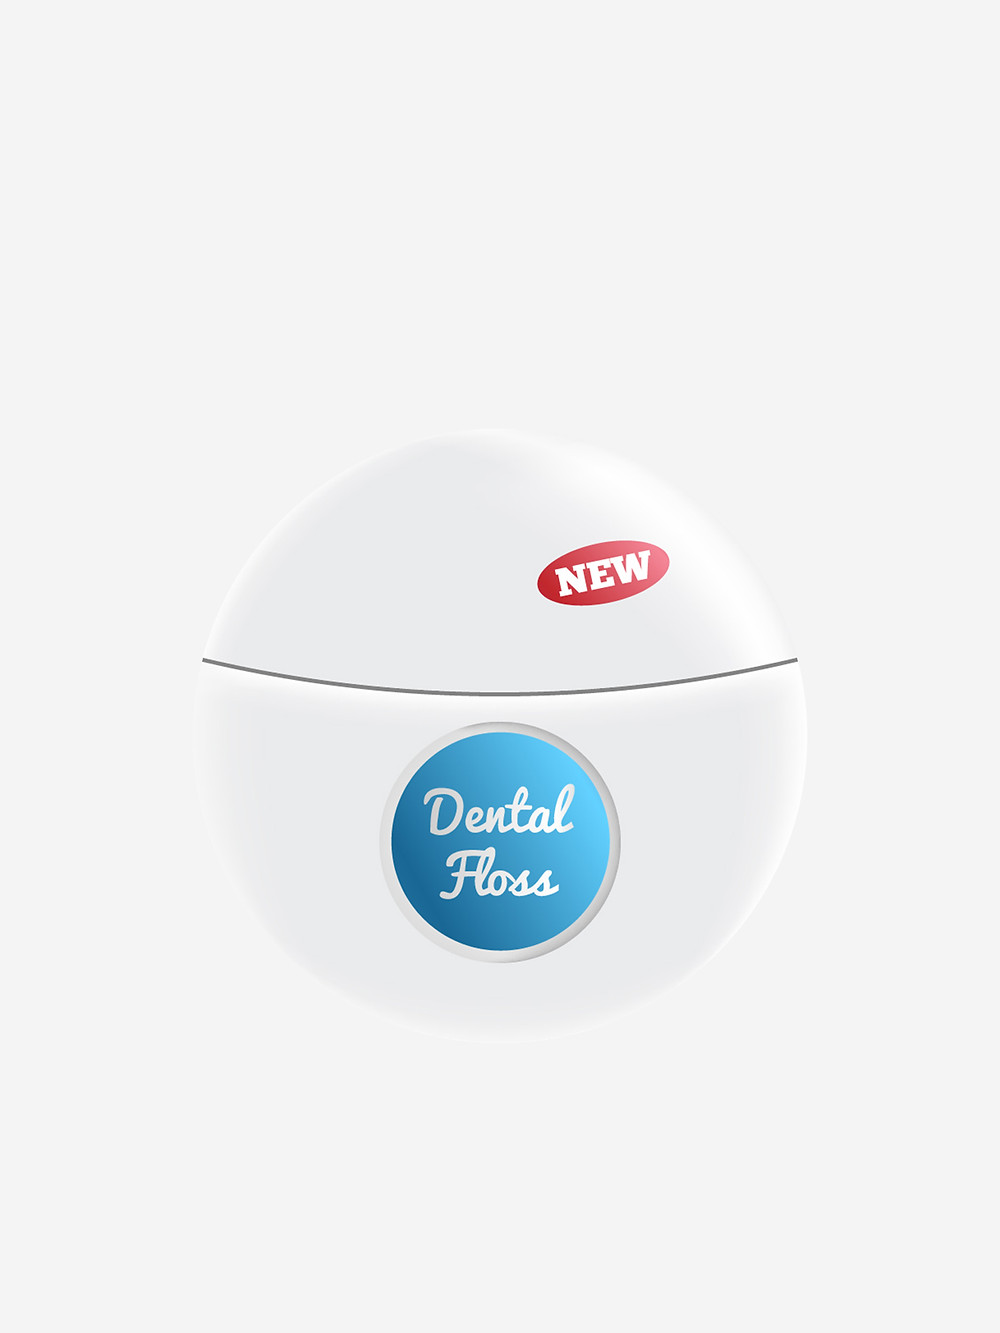 An example of a modern day Dental Floss package.